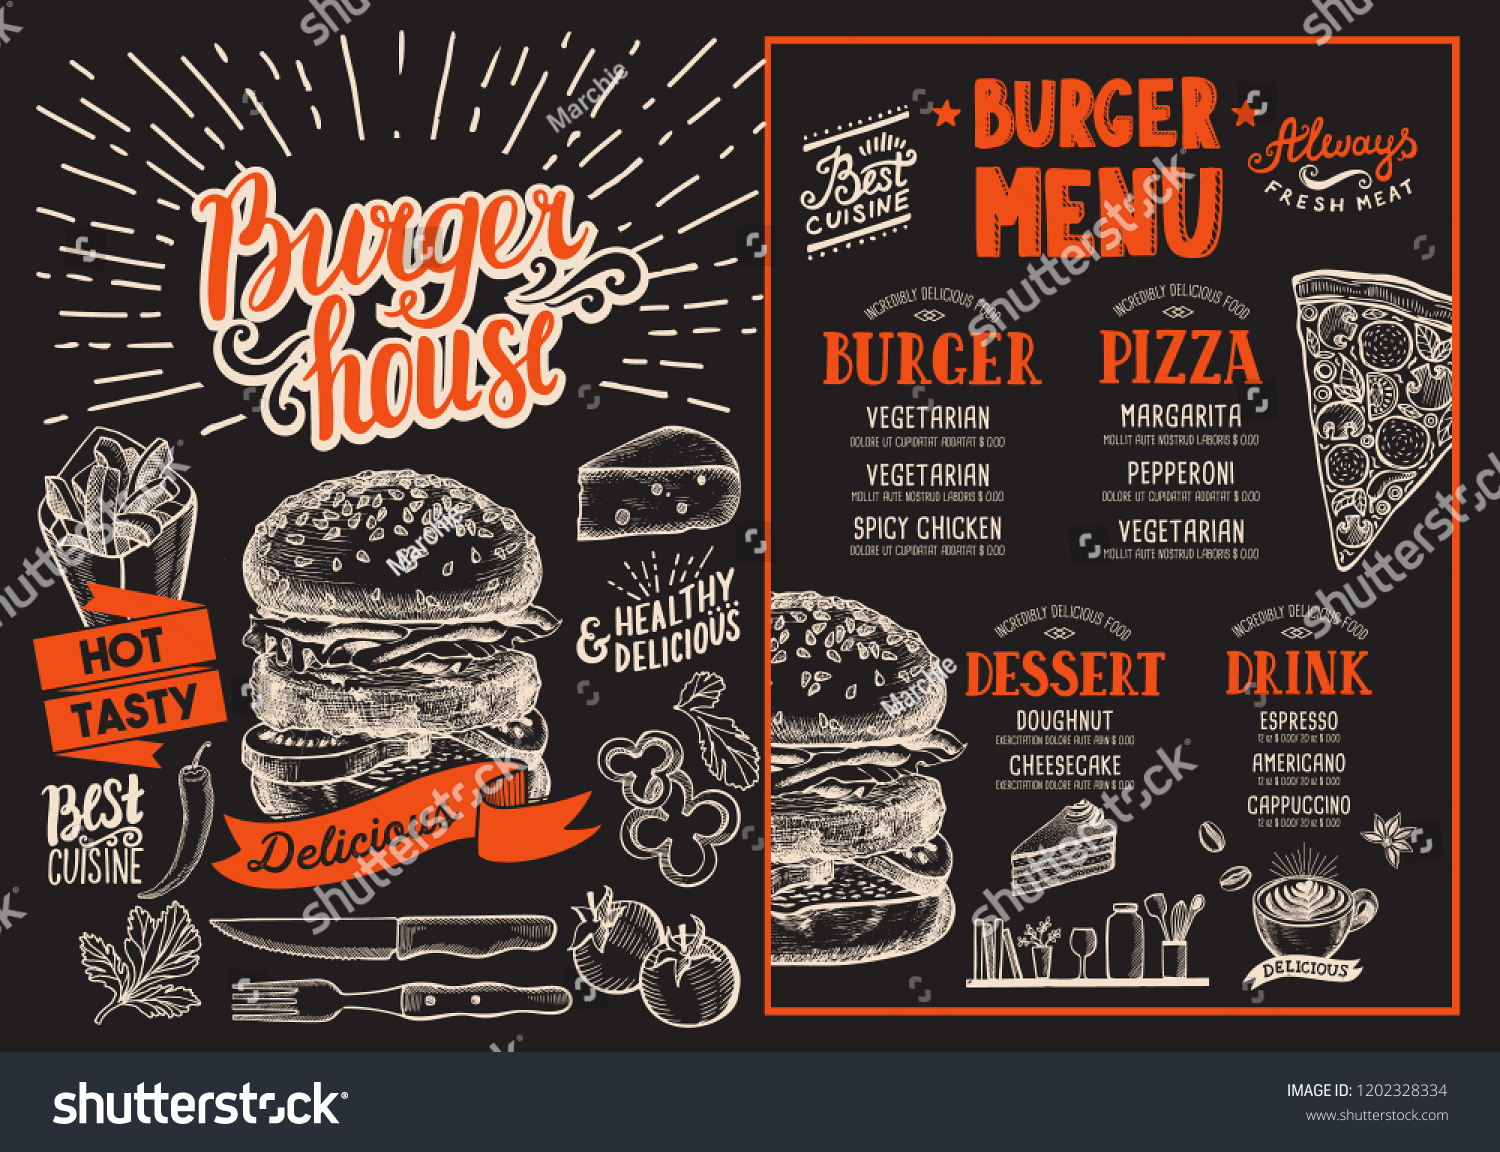 Burger Restaurant Menu Vector Food Flyer Stock Vector Royalty Free 1202328334